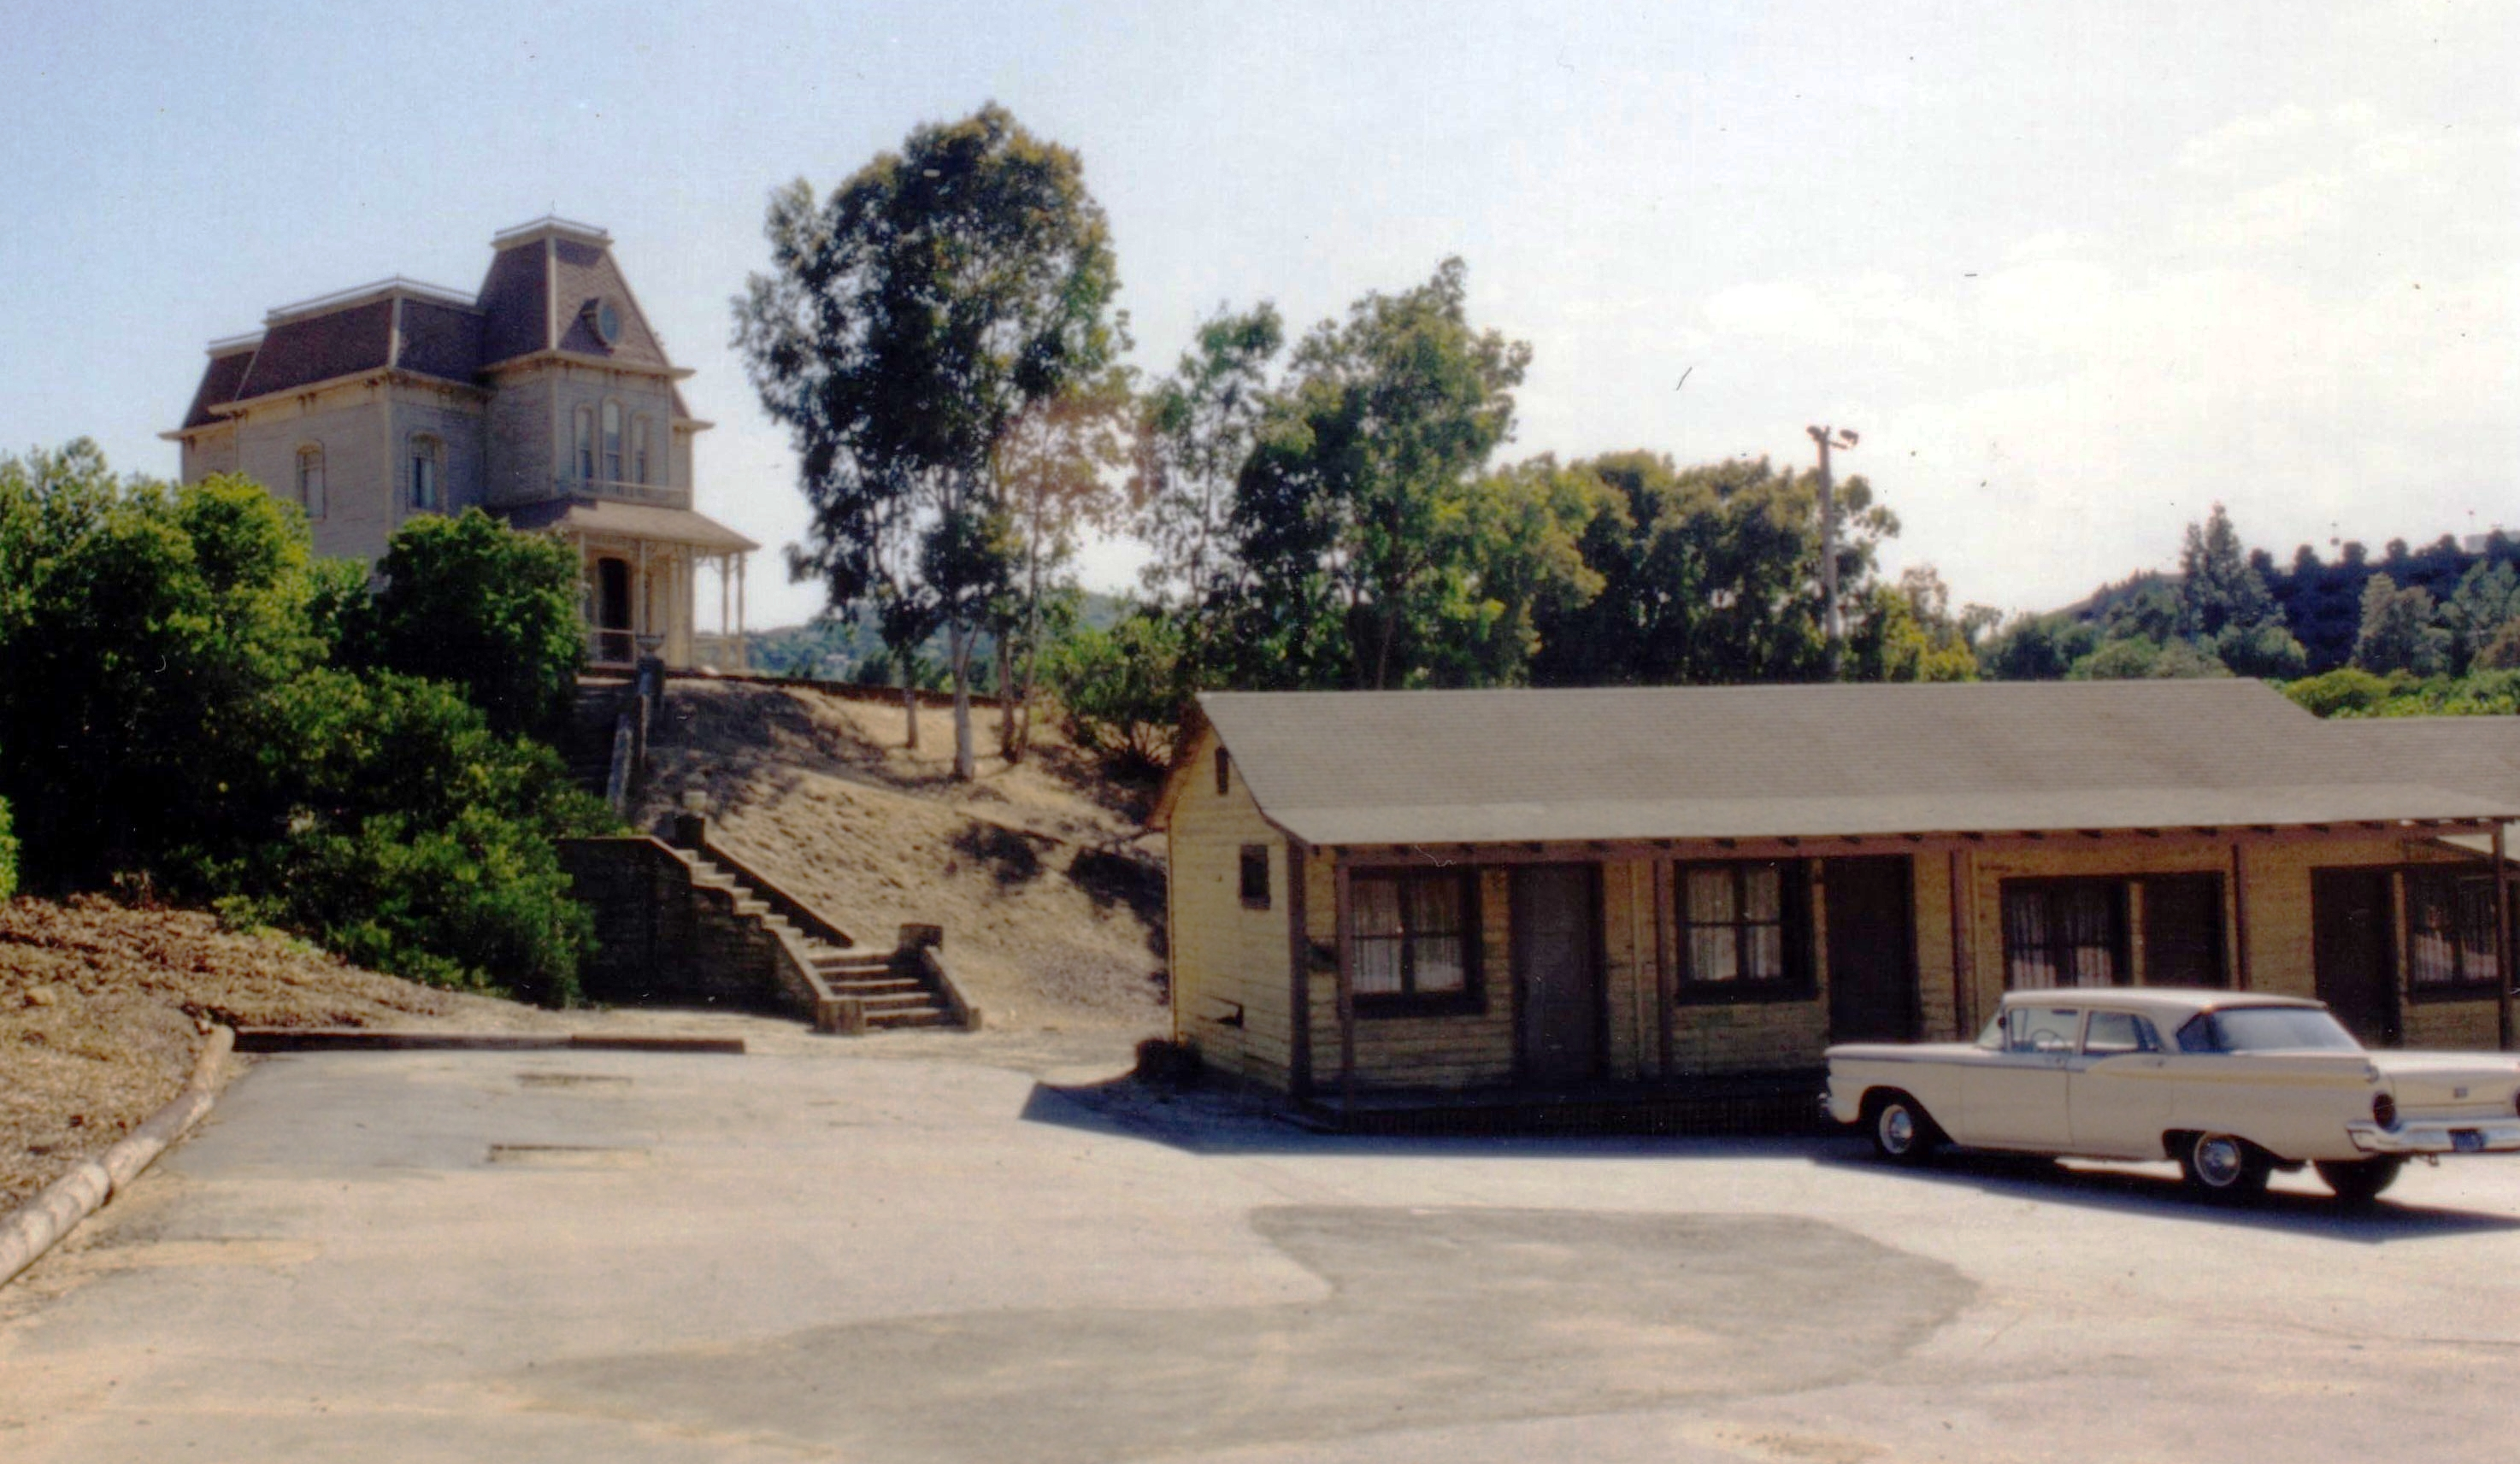 https://upload.wikimedia.org/wikipedia/commons/b/bb/Bates_Motel.jpg